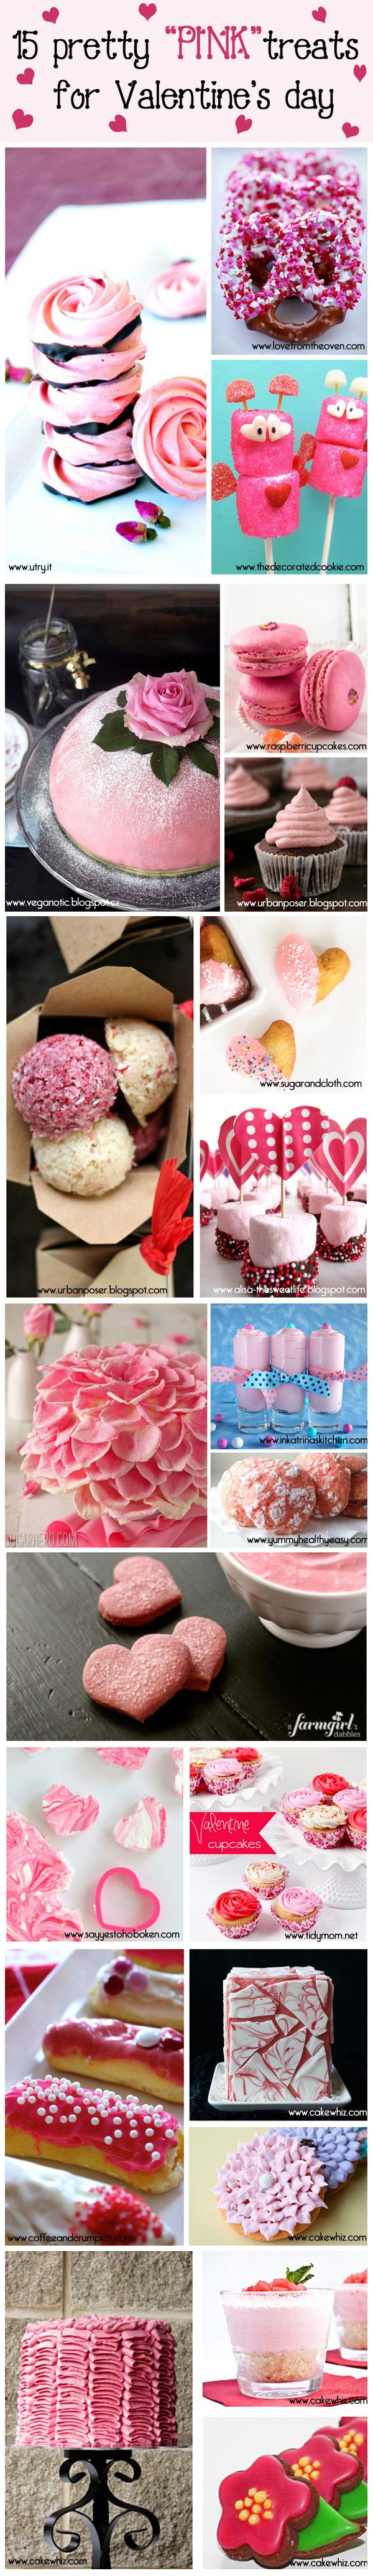 pink treats for valentine's day 8